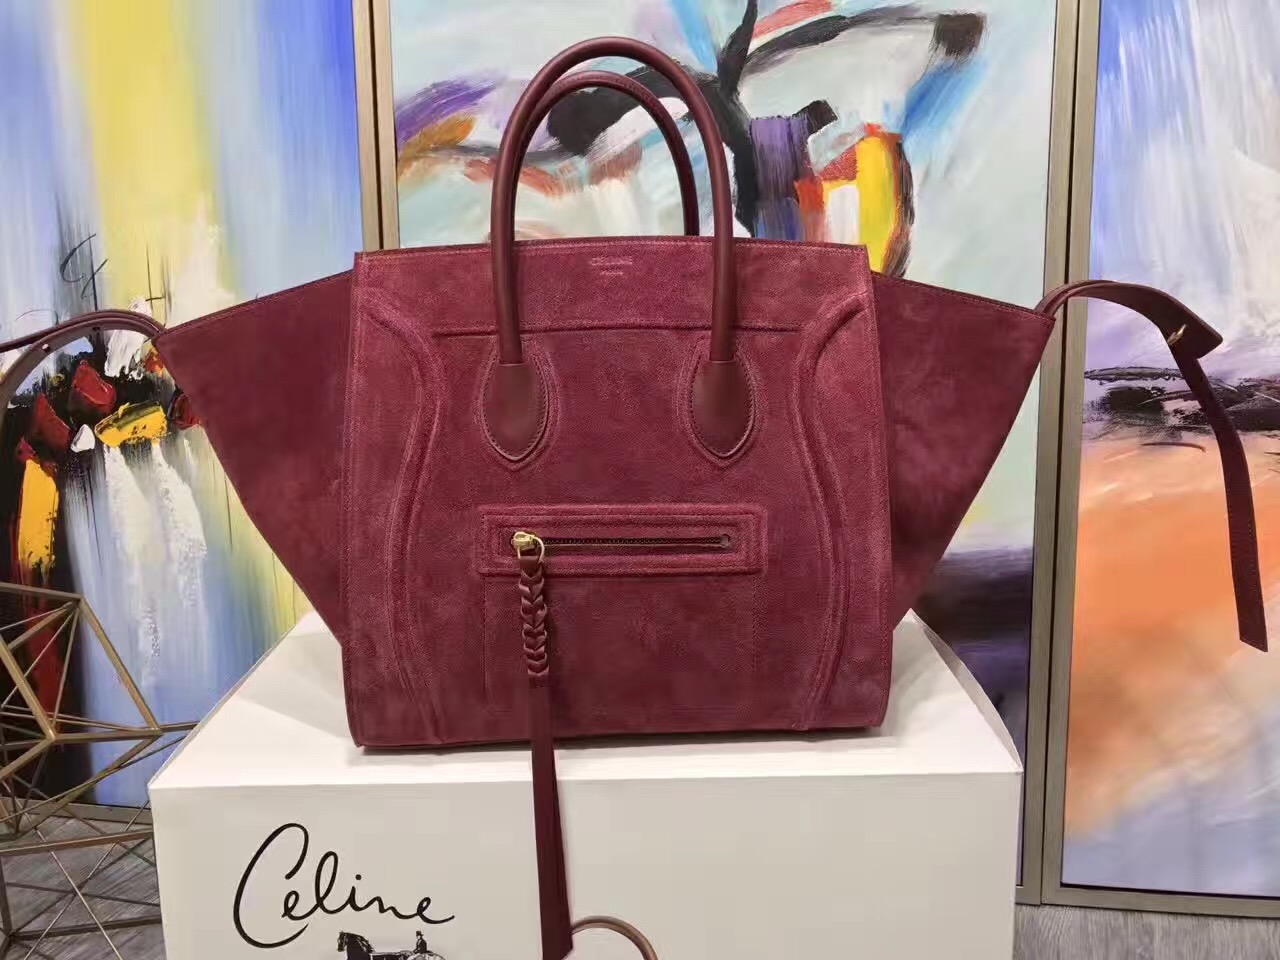 The Best Celine Luggage Phantom Replica Handbags Online Store fc8a7355011f1